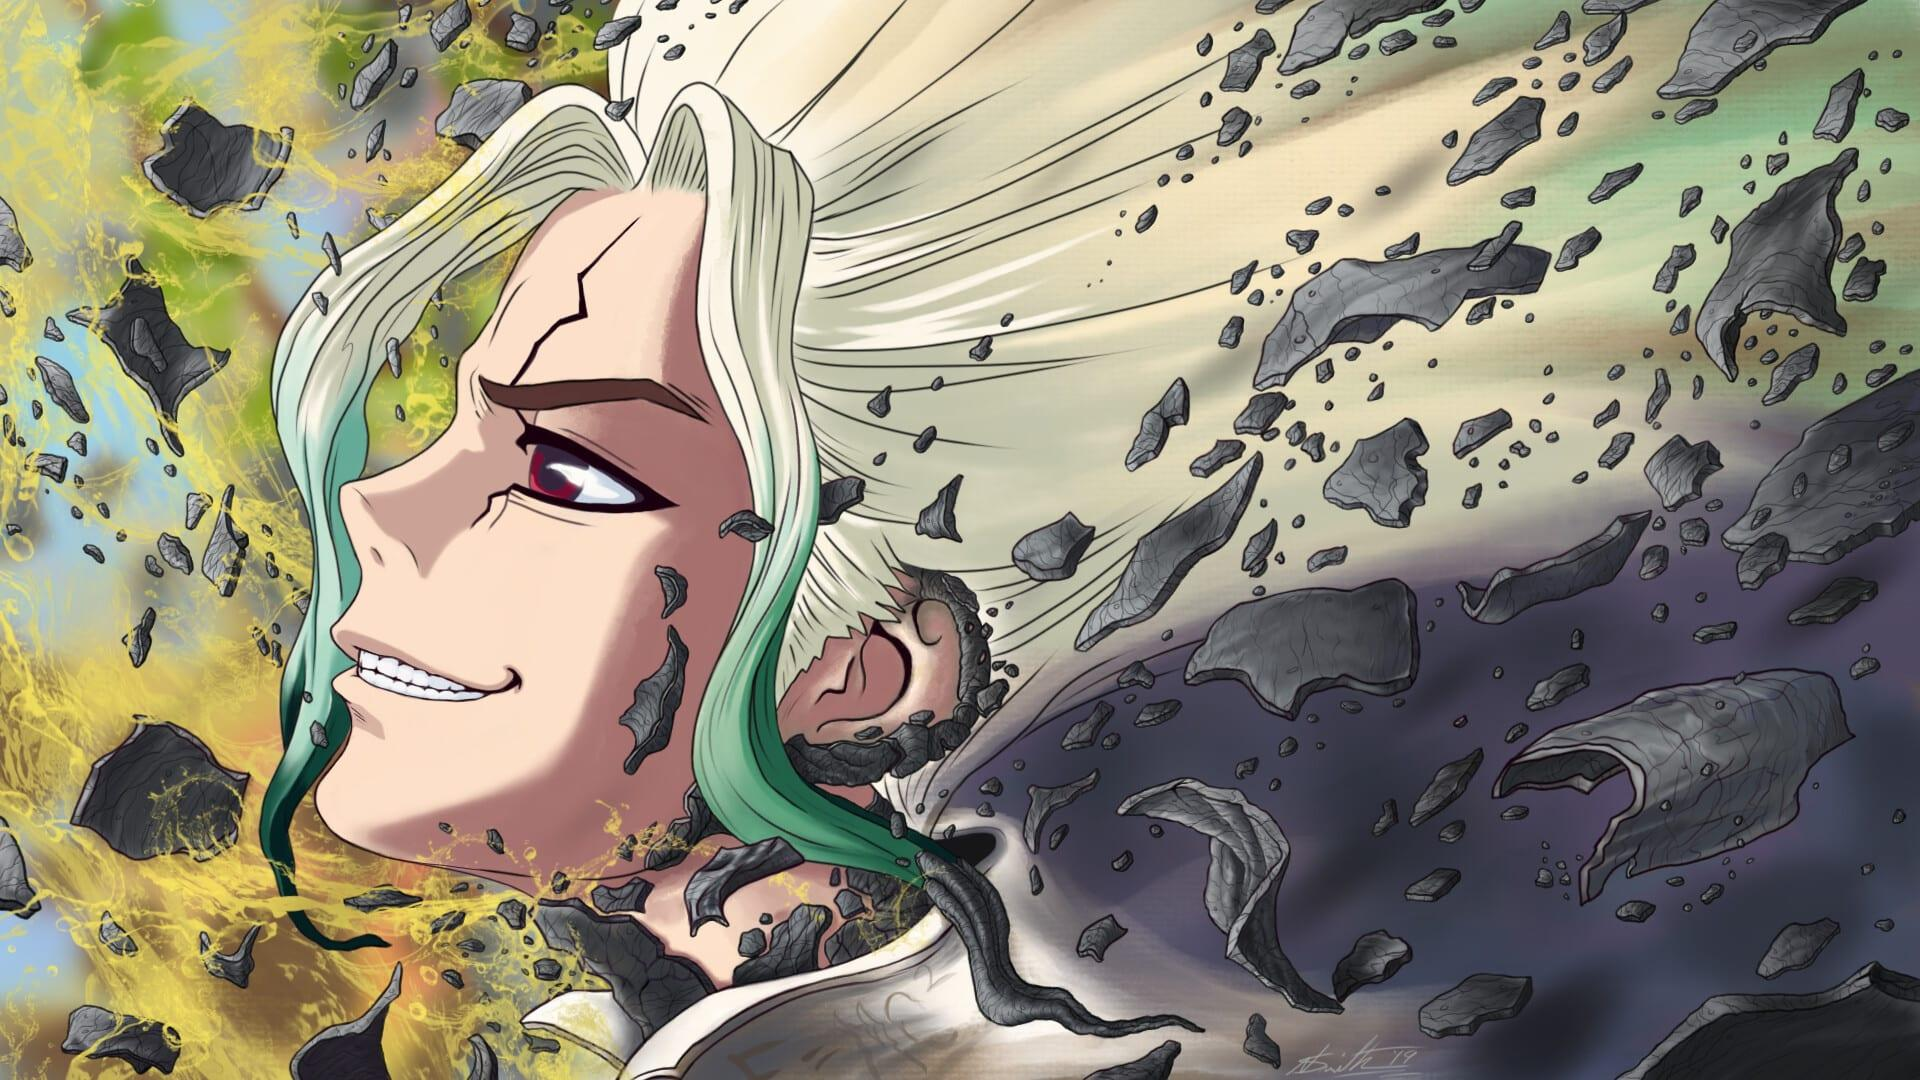 Dr Stone Anime Hd Wallpapers - Wallpaper Cave